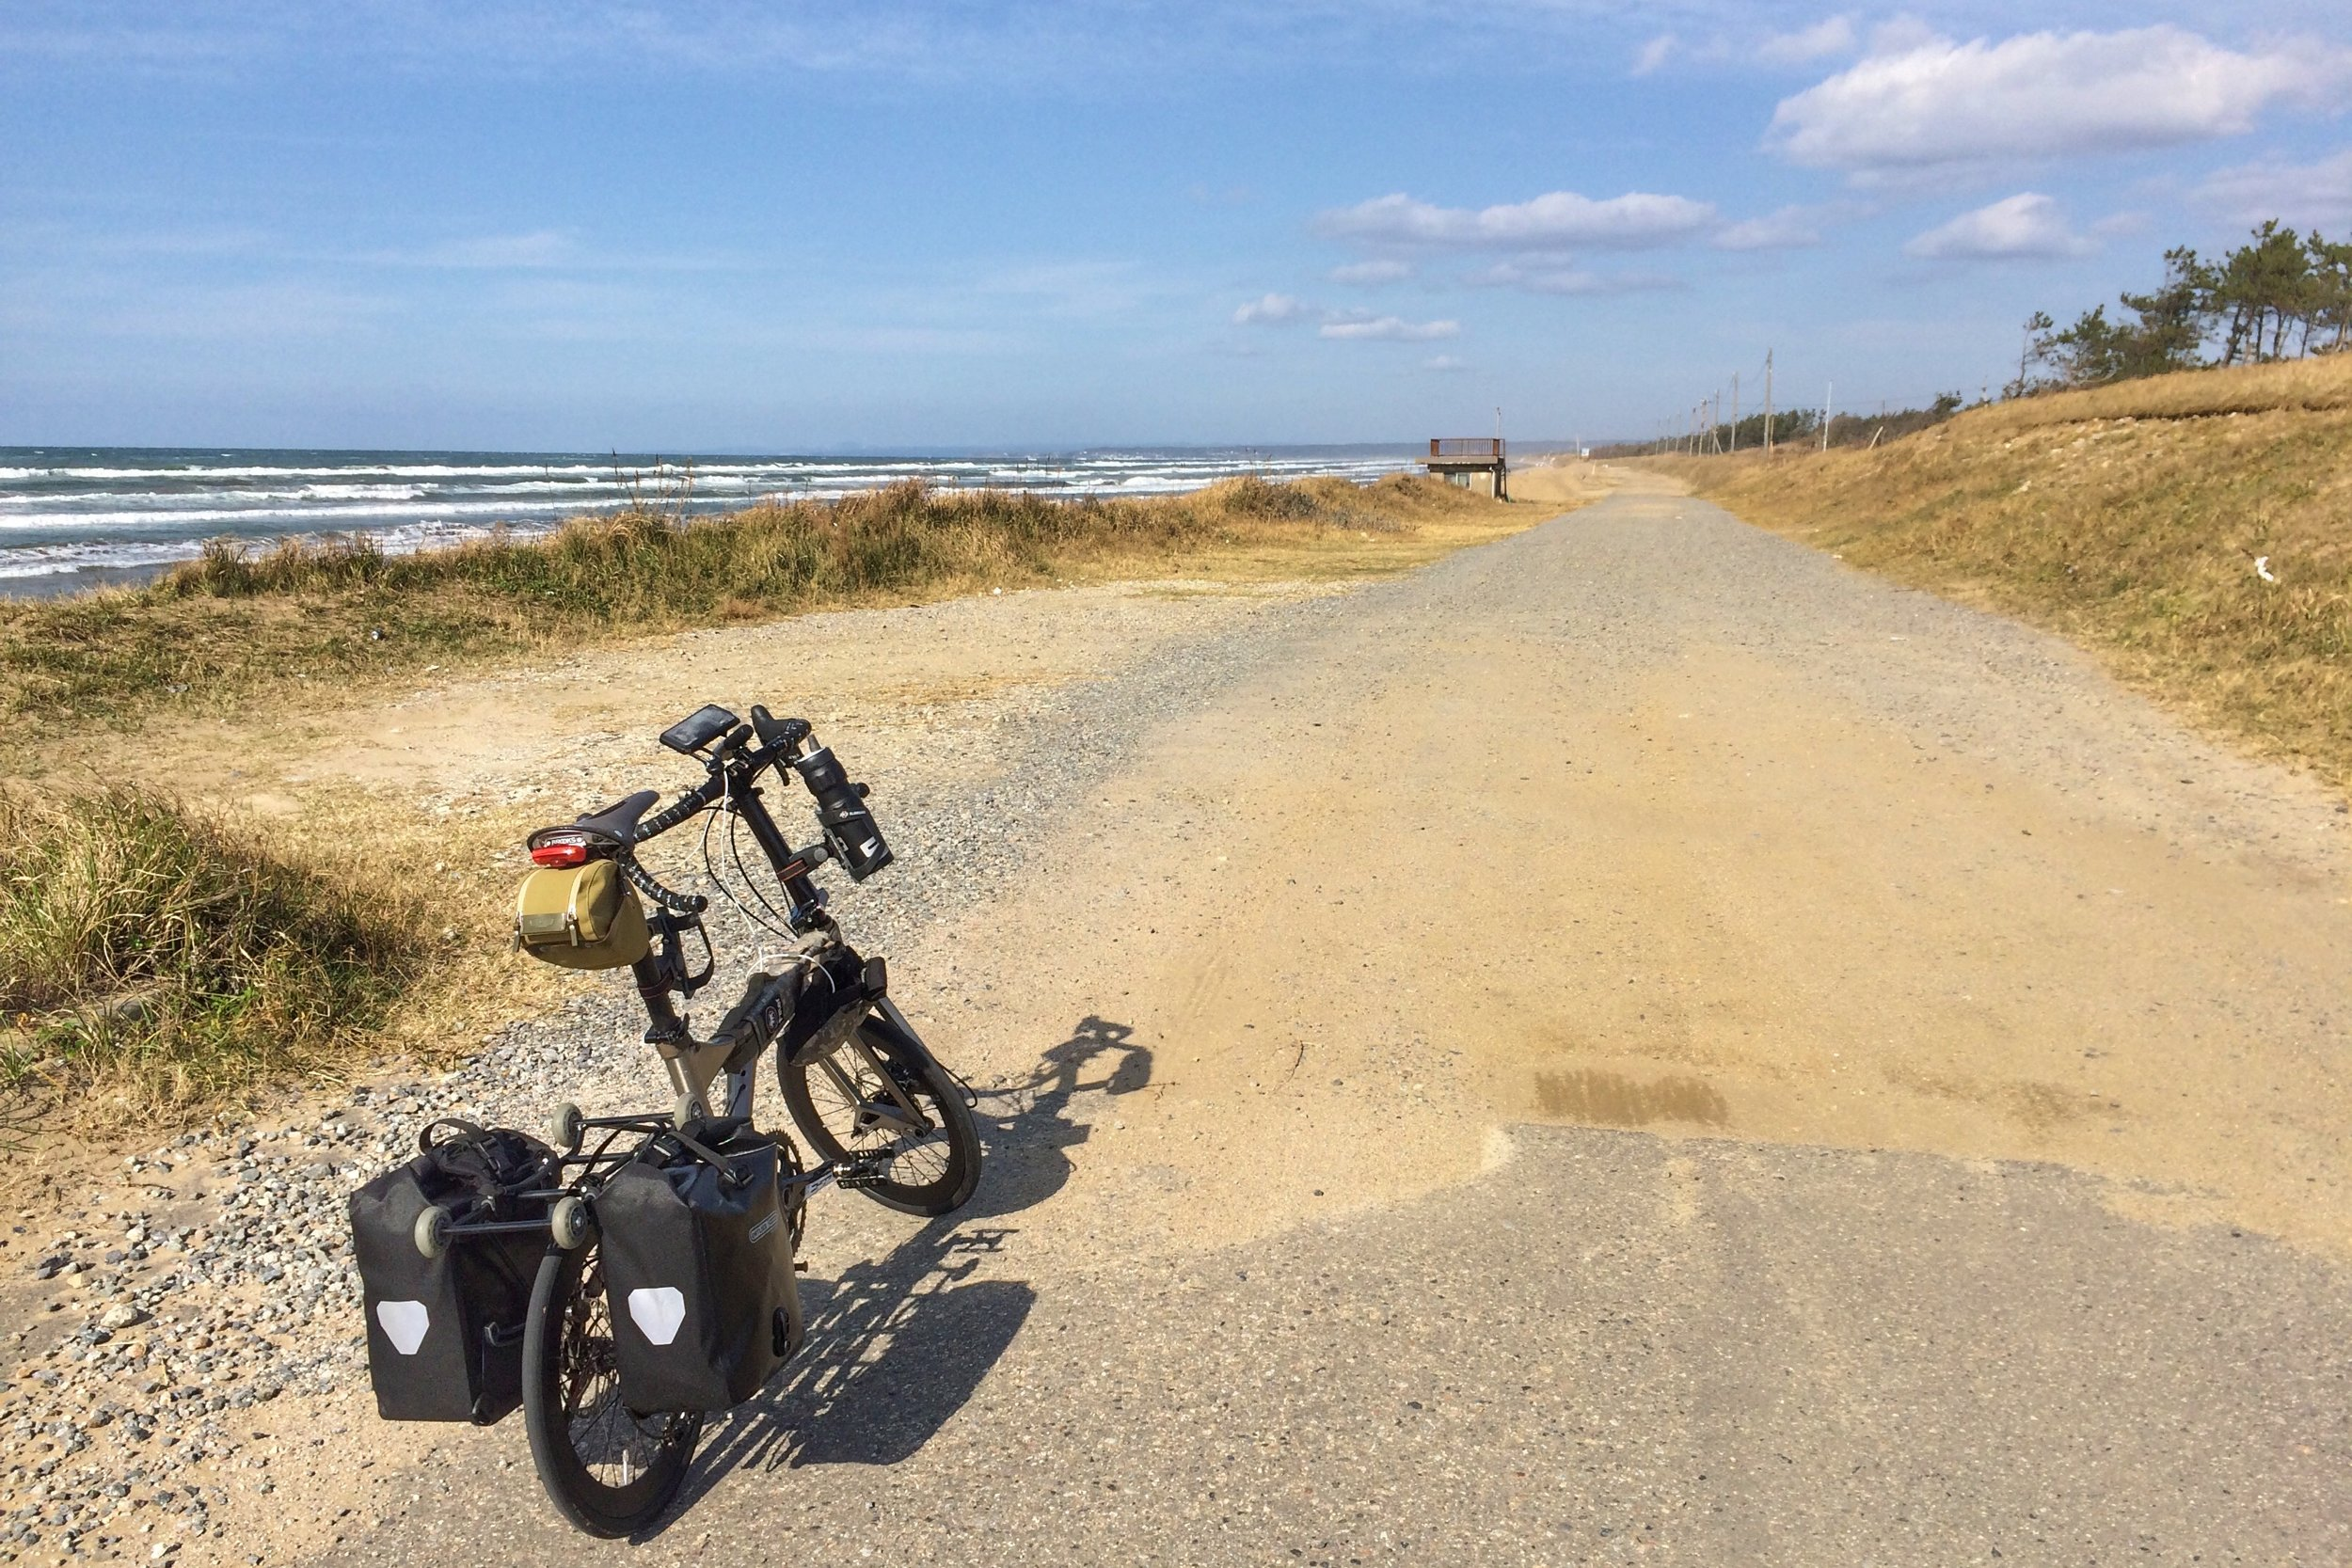 Our starting point at Chirihama with tightly compacted fine sand. It's a challenging ride on skinny tyres.